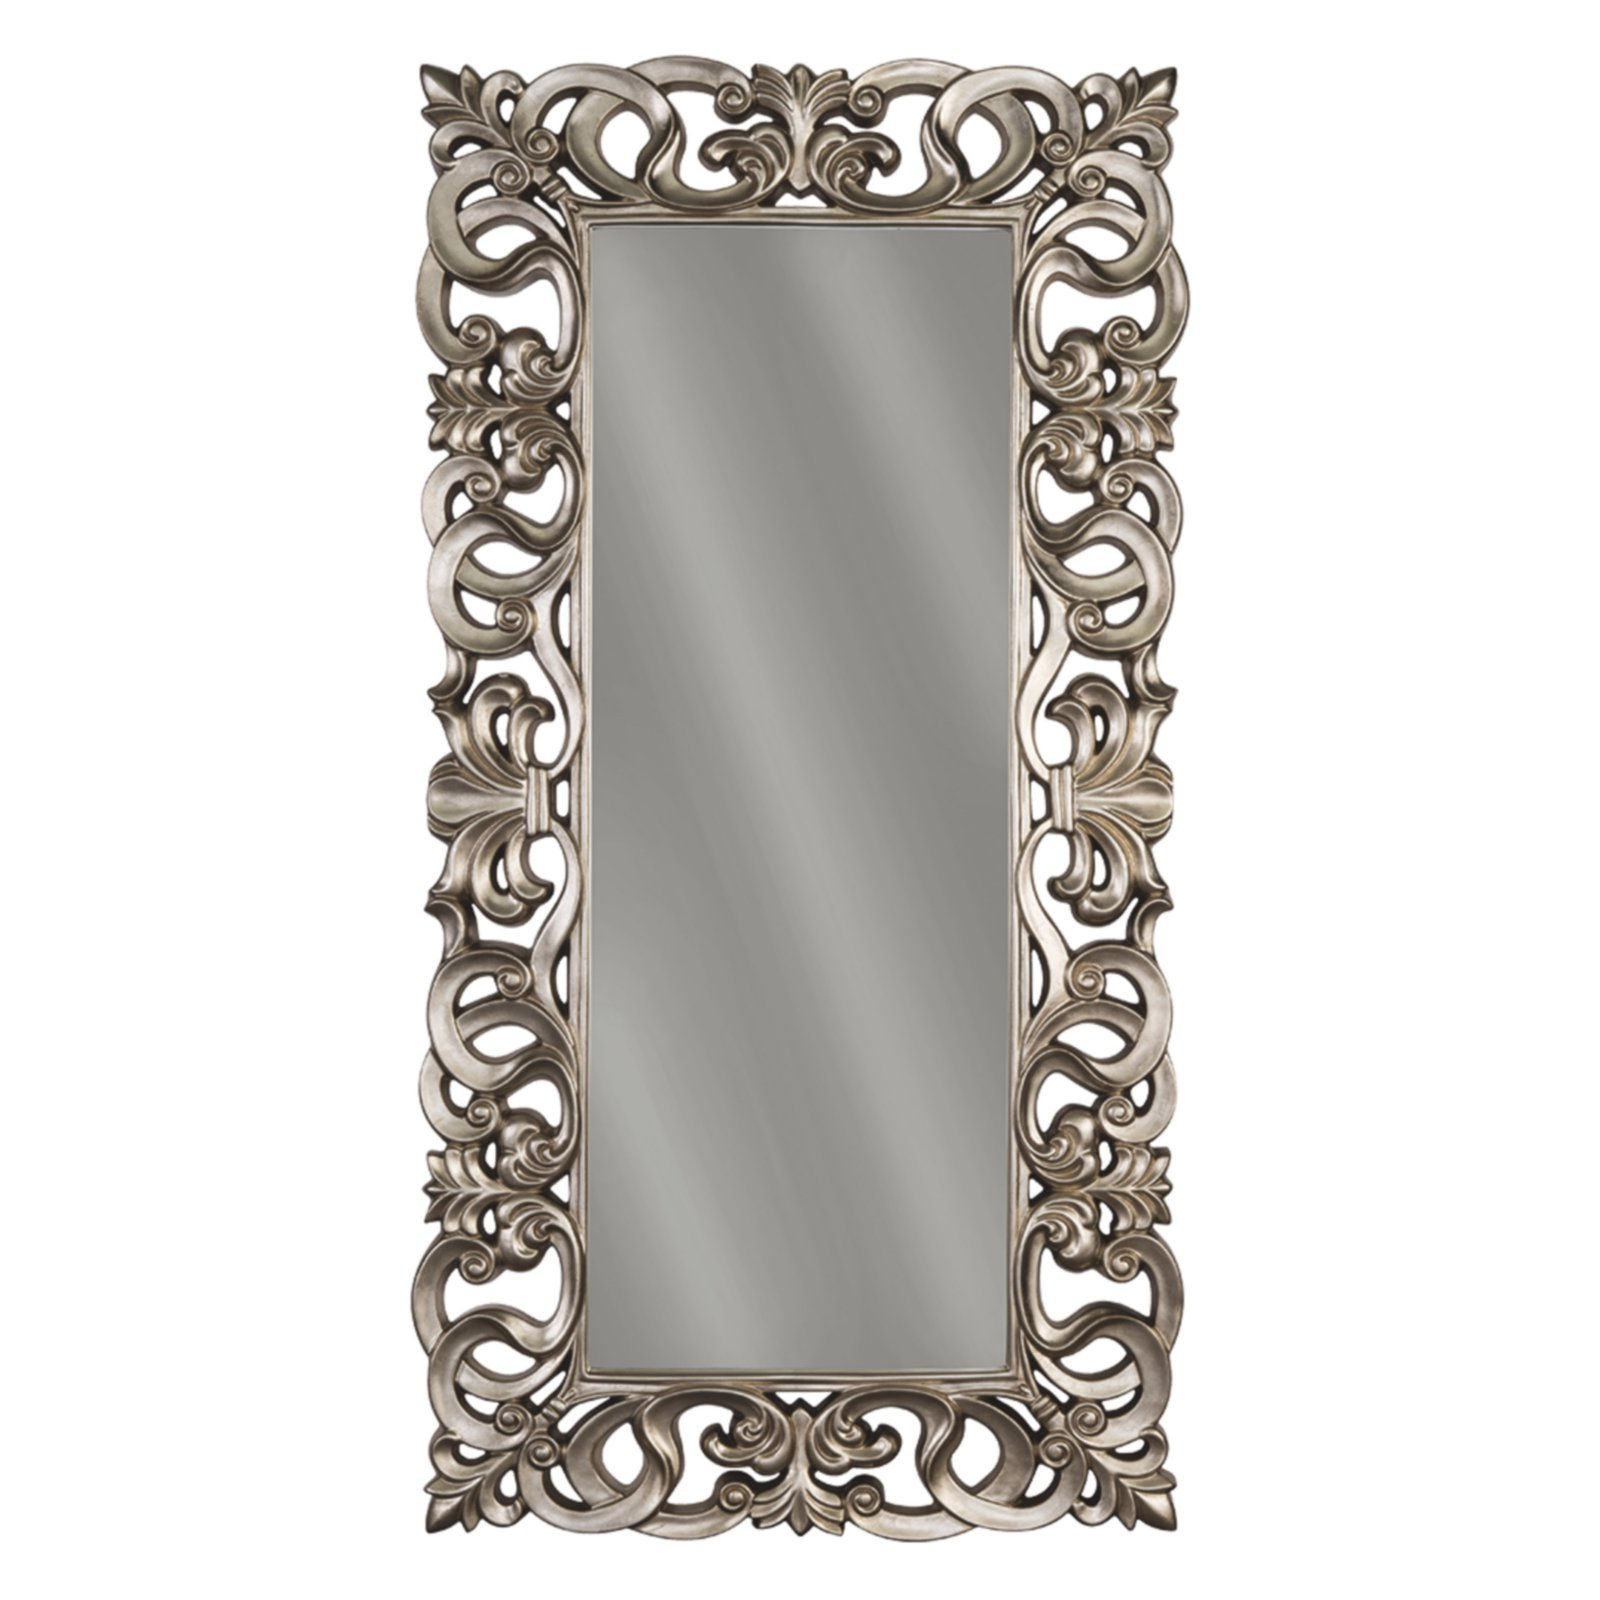 2019 Ashley Lucia Accent Mirror – 30W X 71H In. Within Accent Mirrors (Gallery 1 of 20)